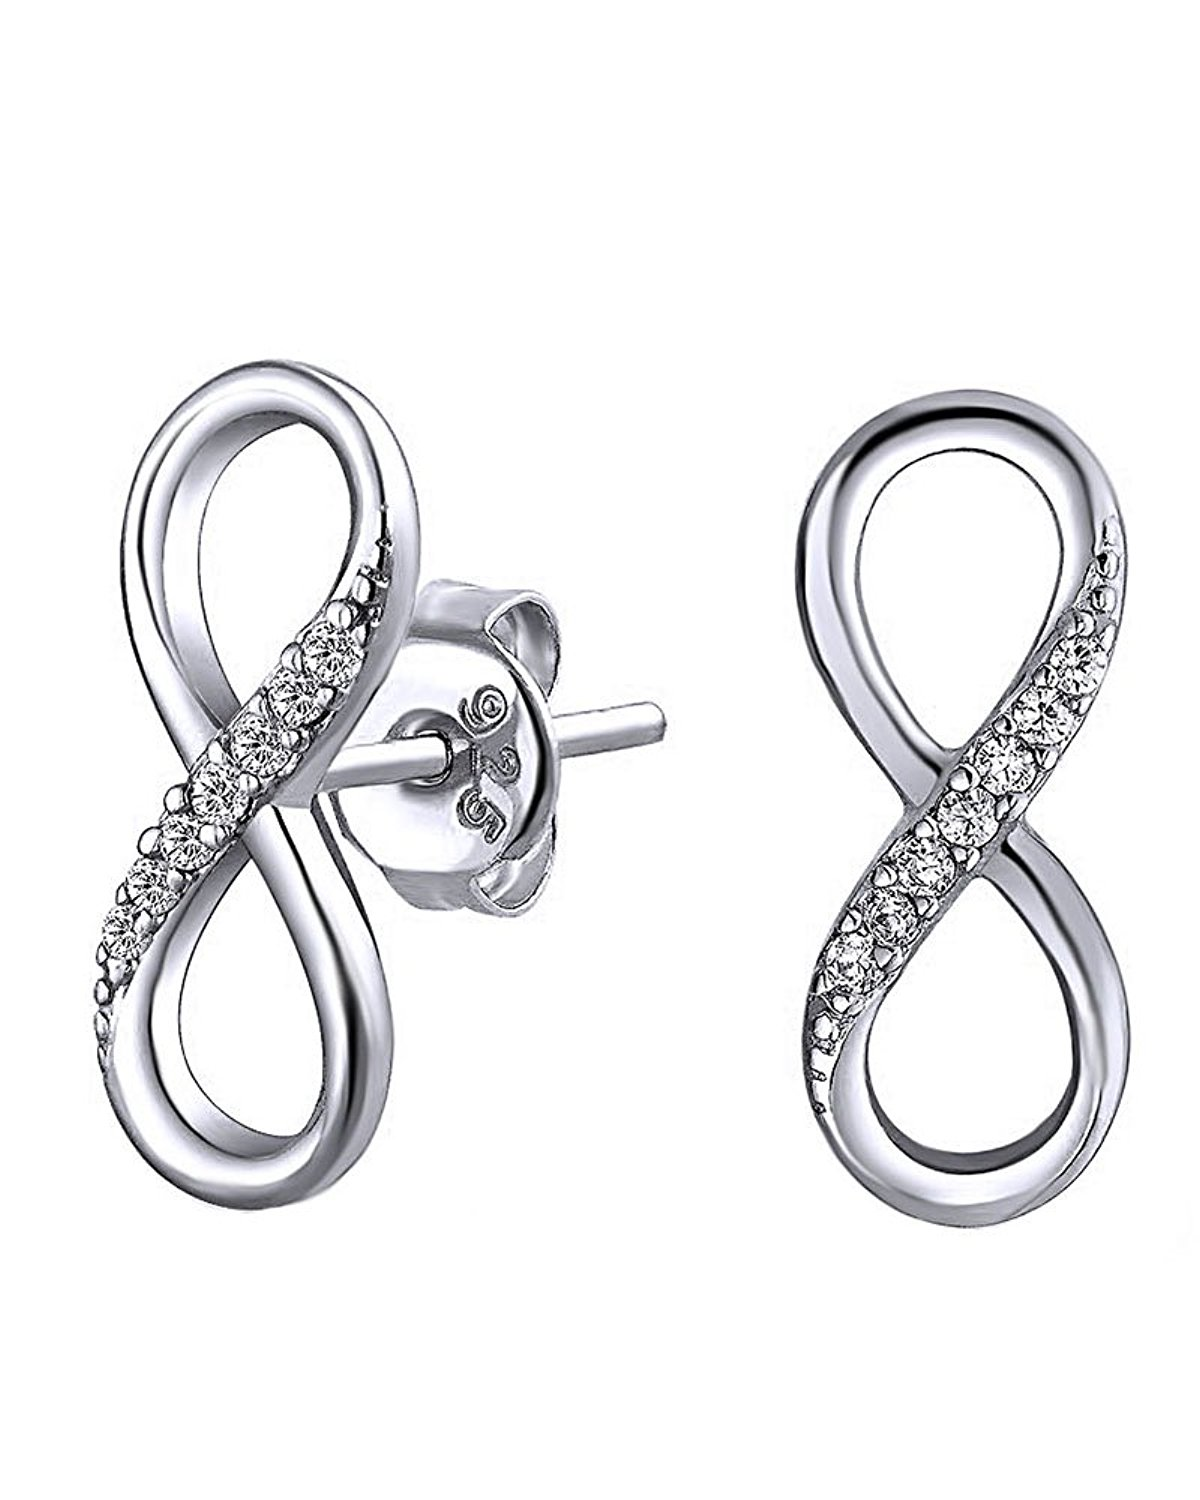 Infinity Earrings White Gold Find